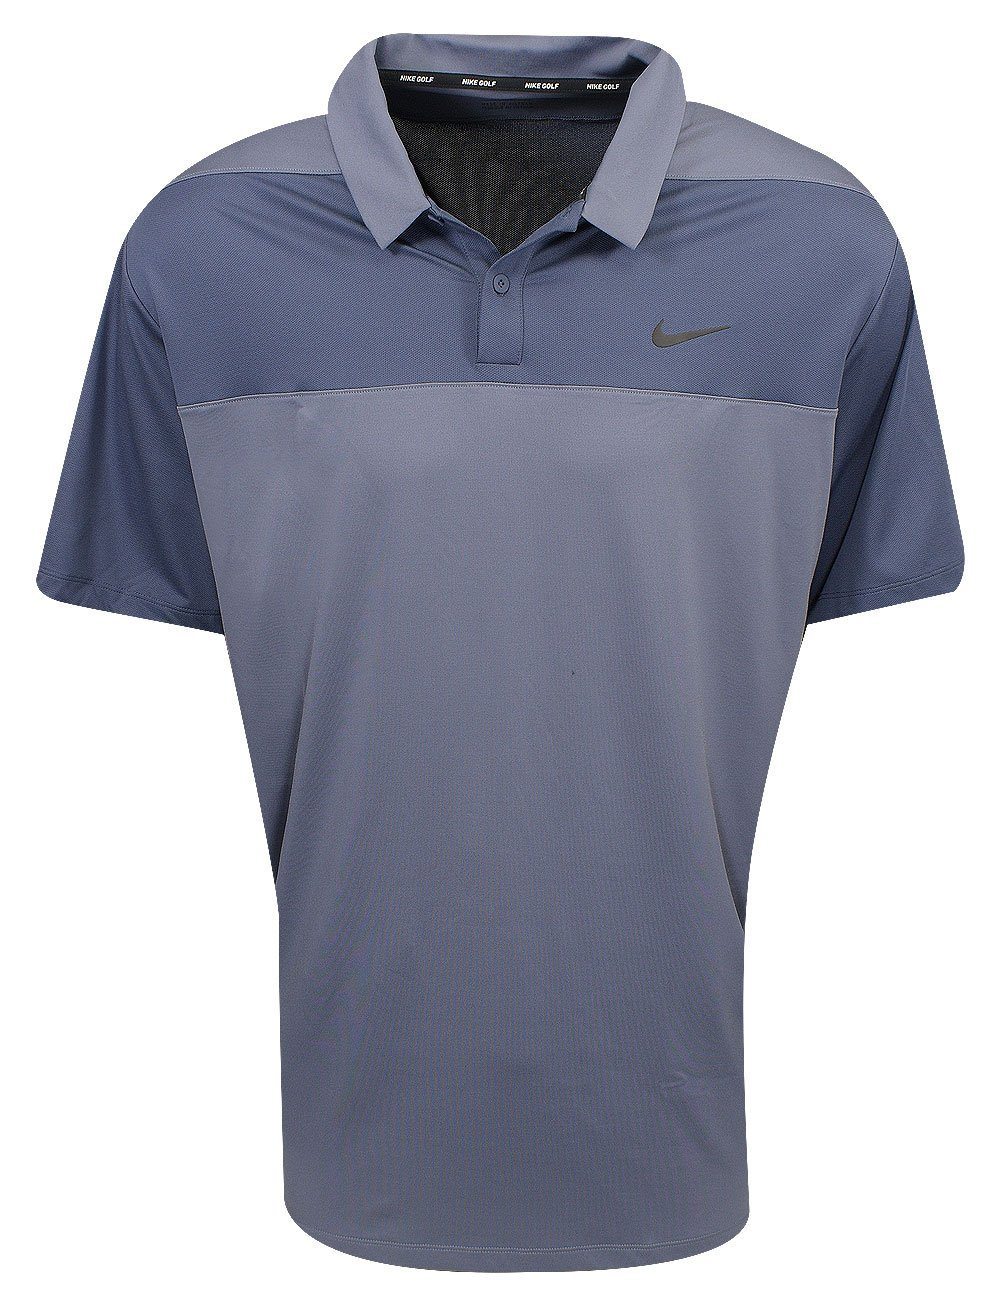 9d3527ad Amazon.com: Nike Dry Color Block Men's Golf Polo: Sports & Outdoors